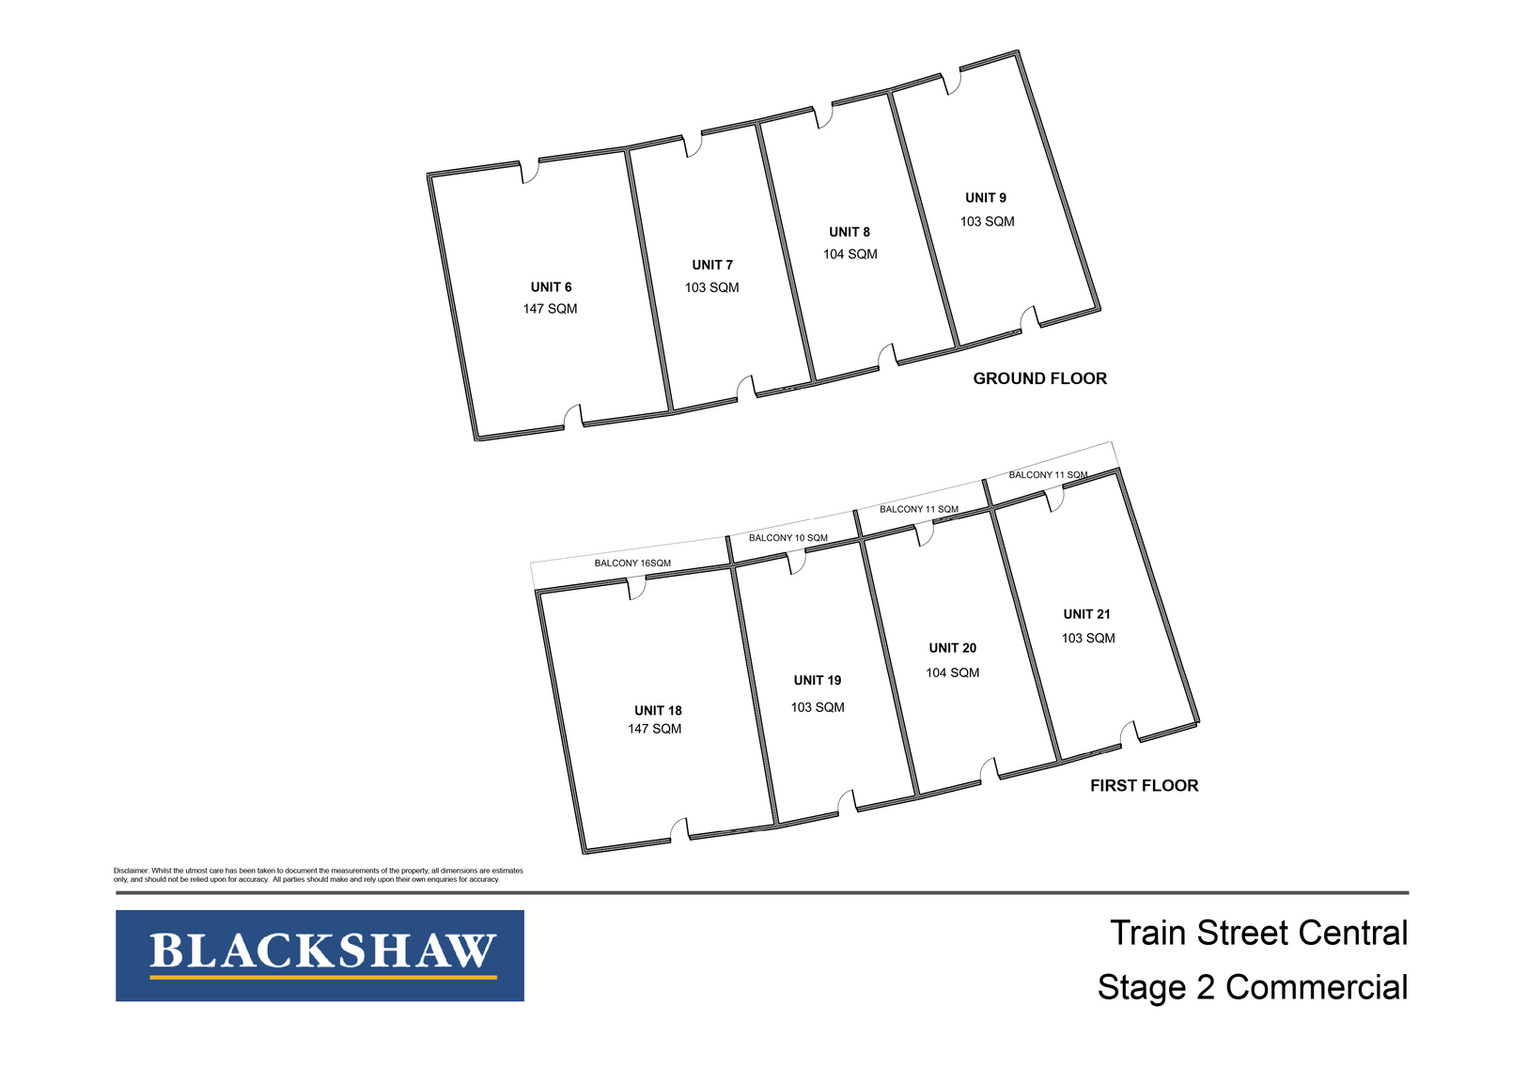 Train Street Central Commercial Stage 2 Floor Plans